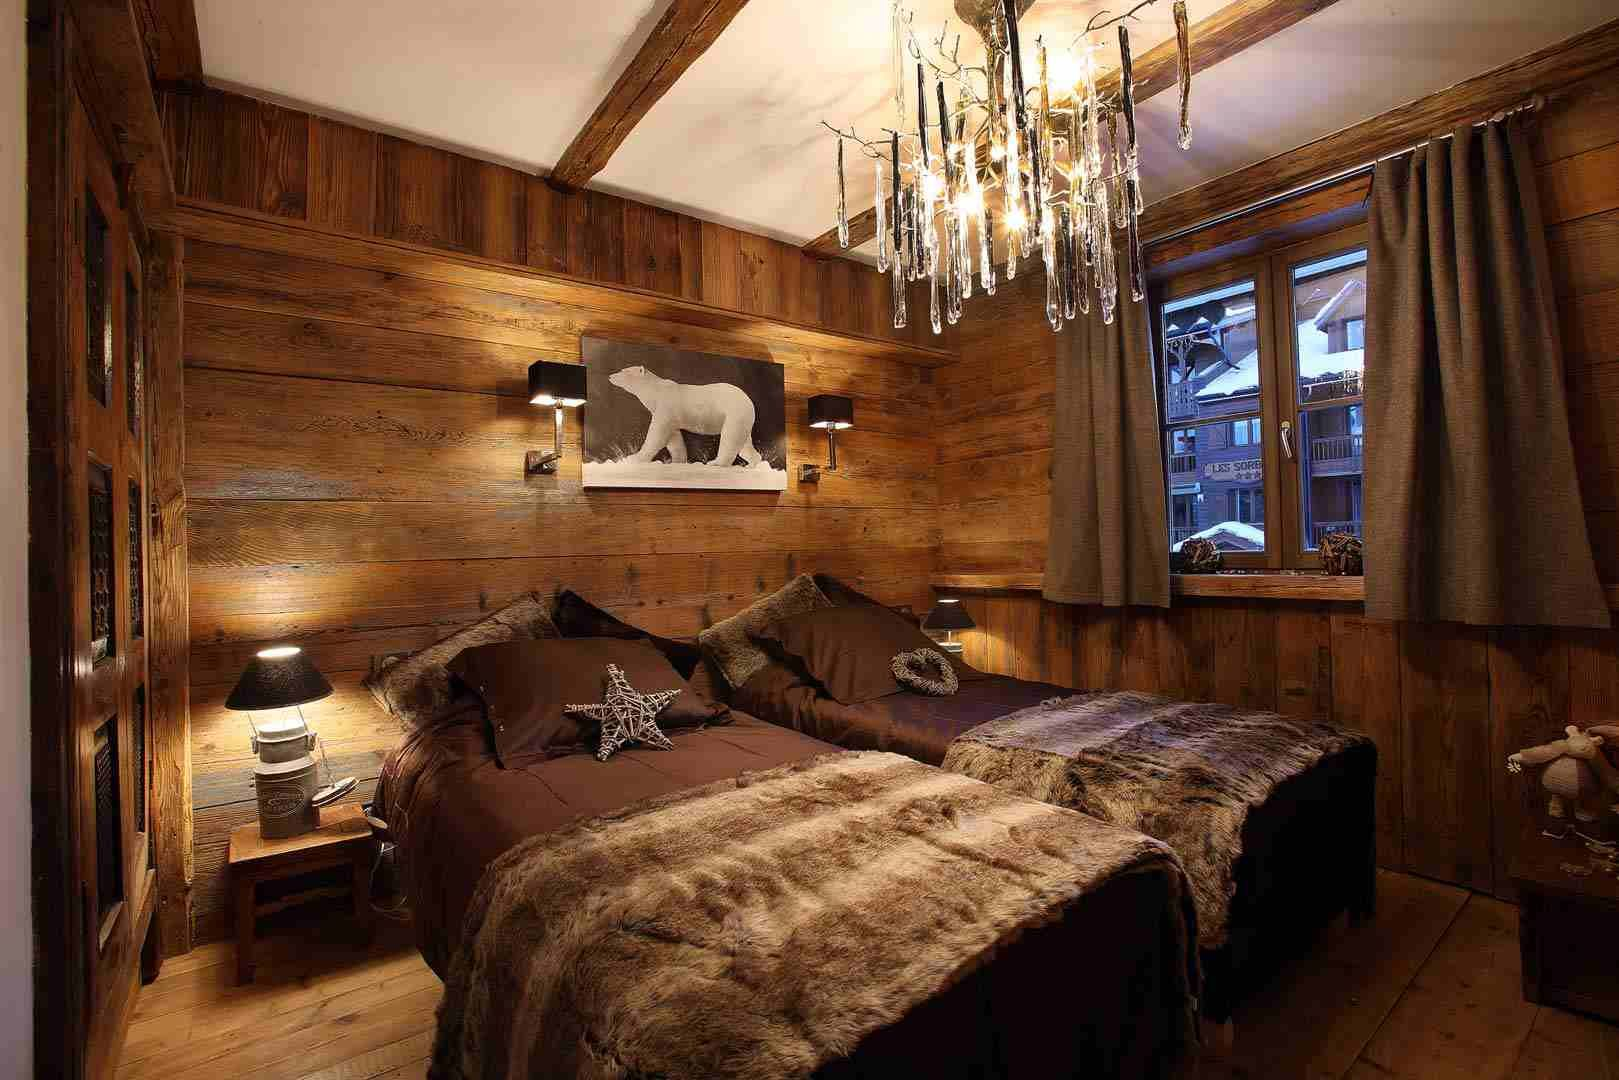 D co int rieur style chalet id es pour atmosph re - Idees decoration interieur appartement ...